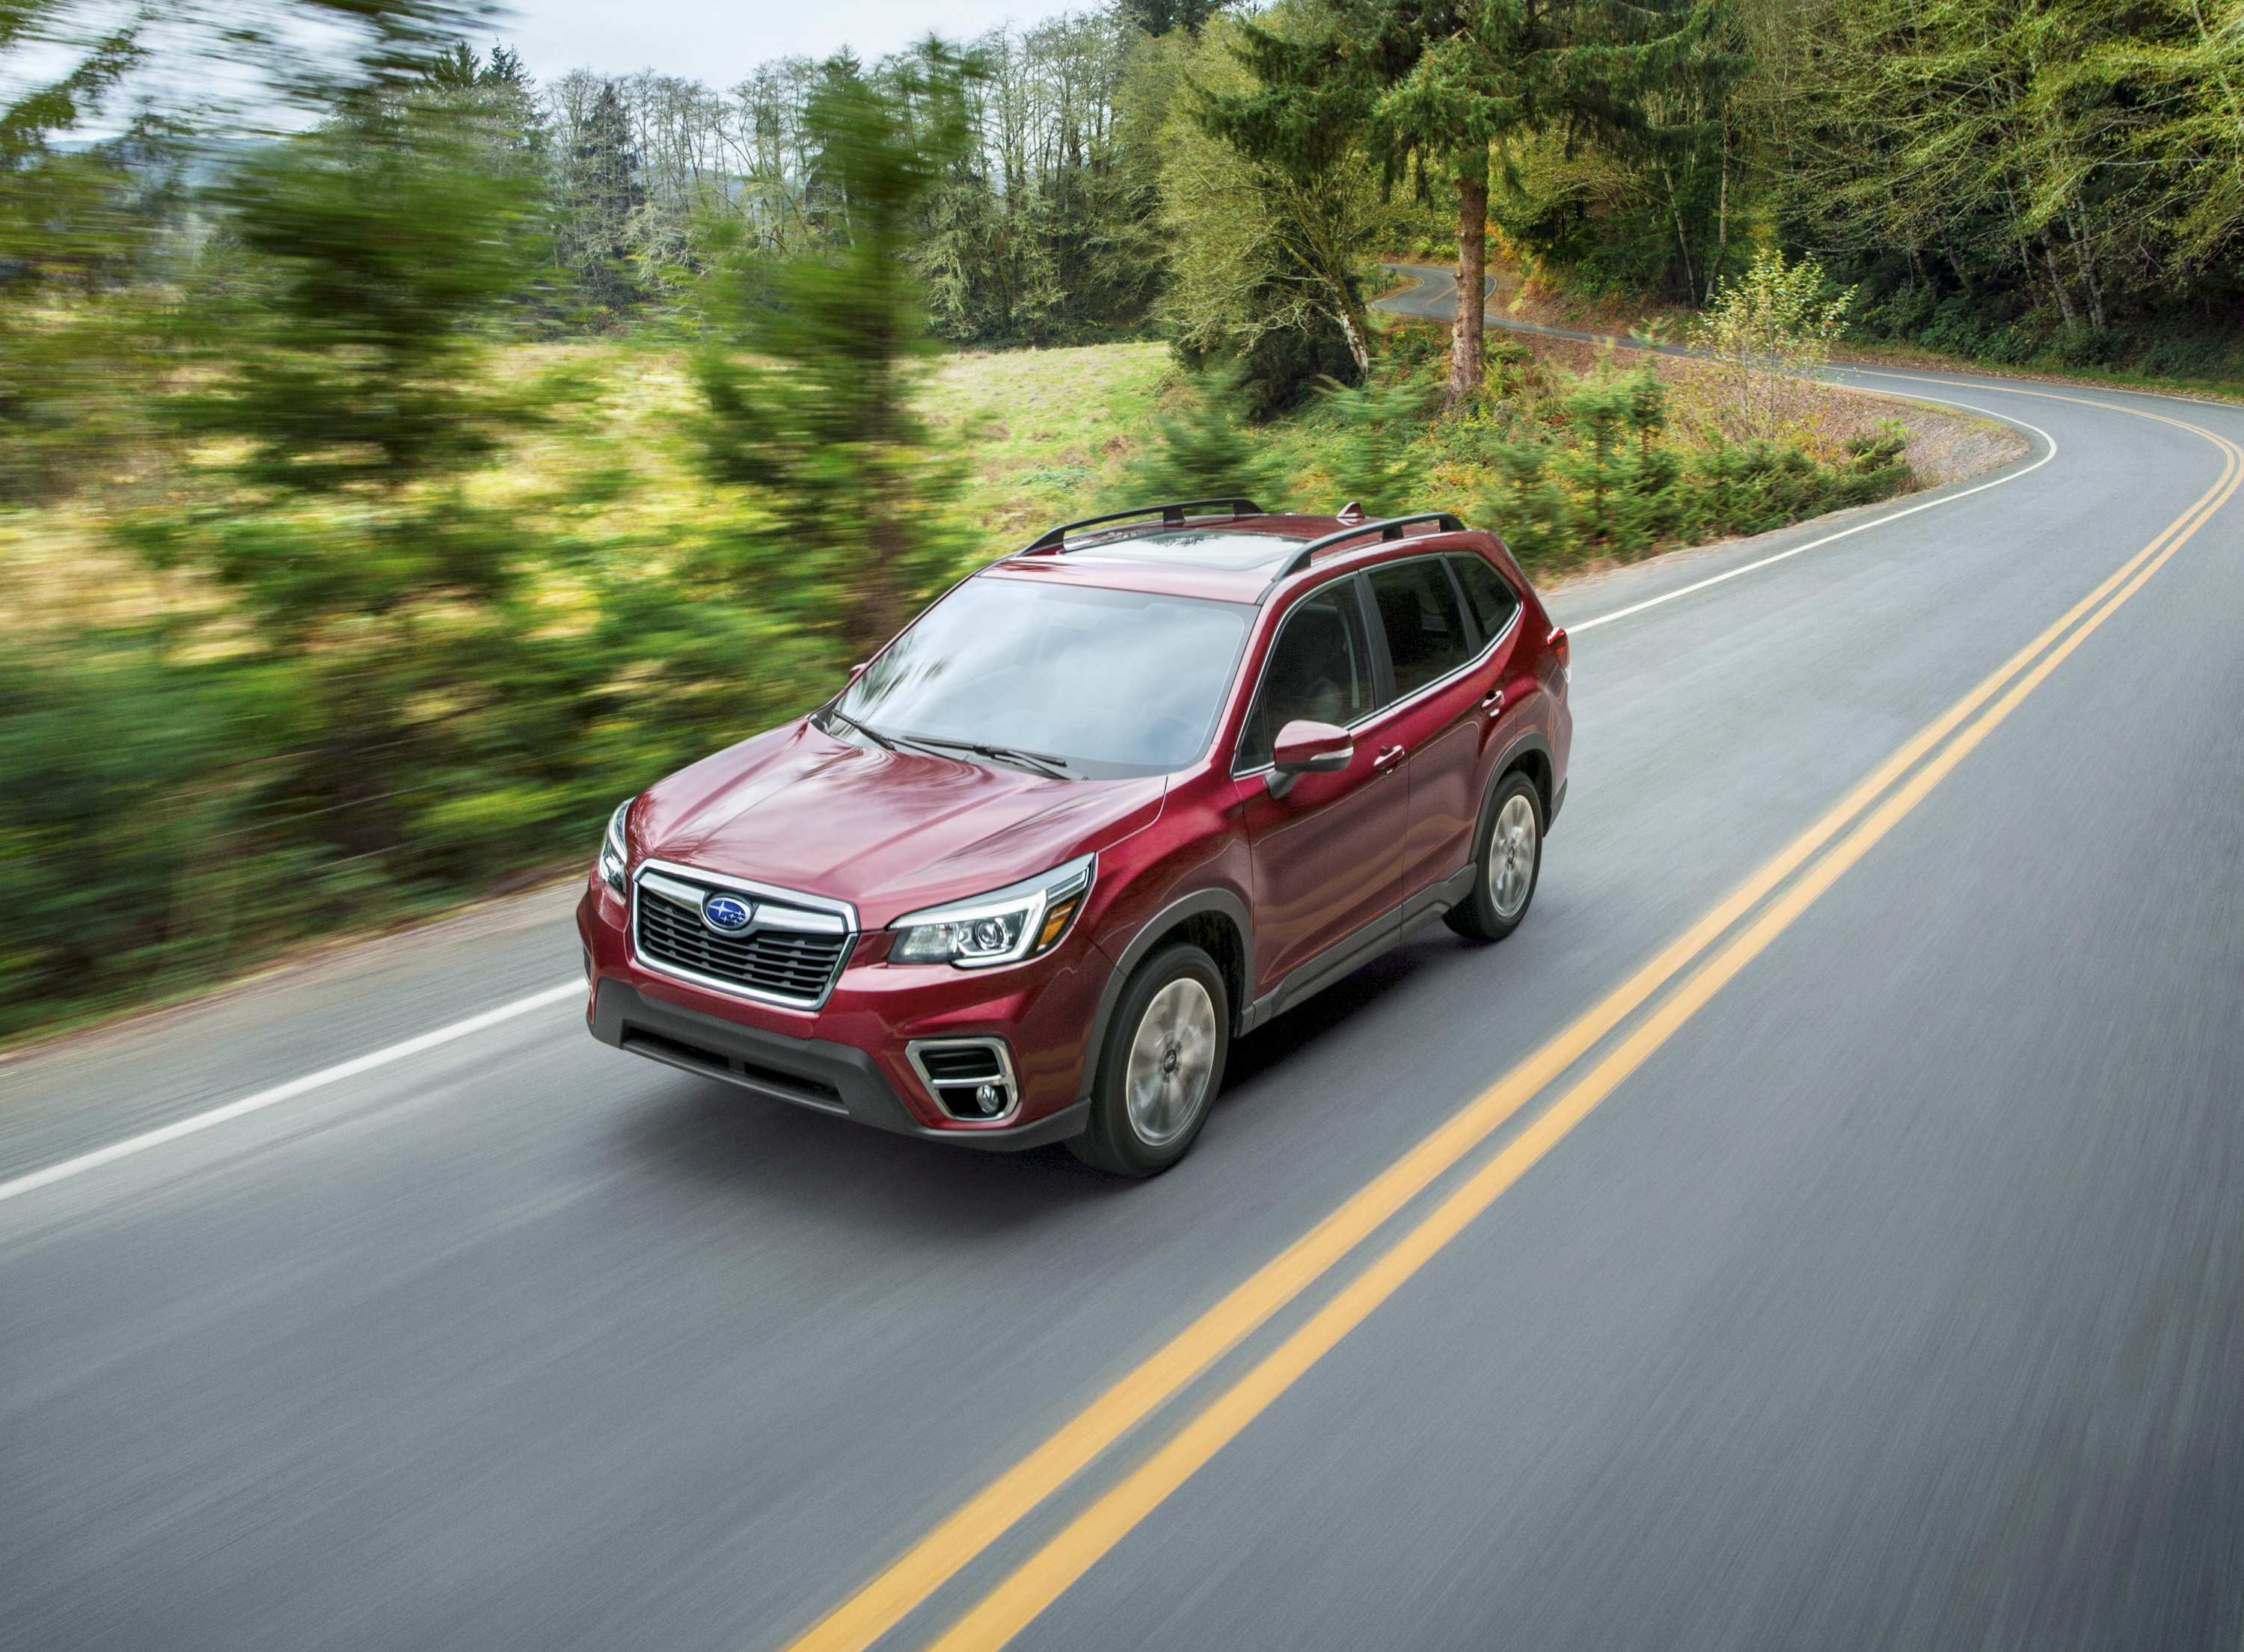 60 Gallery of 2020 Subaru Forester Towing Capacity First Drive with 2020 Subaru Forester Towing Capacity